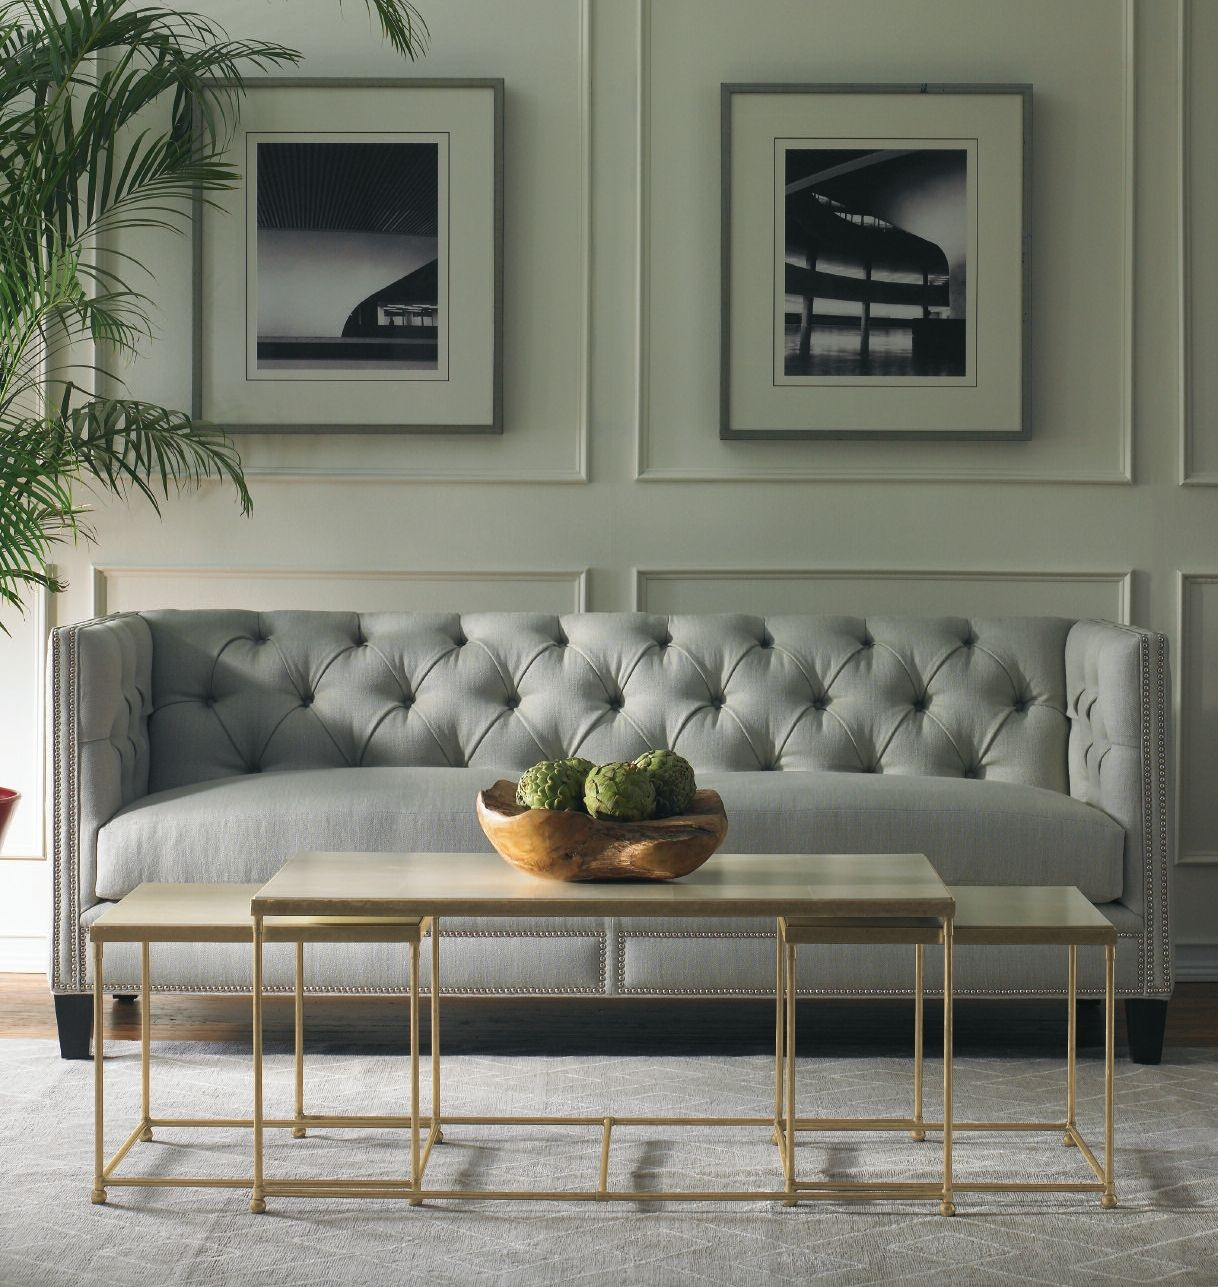 light grey couch living room decor black mirror in home decor: passing trend or here to stay?